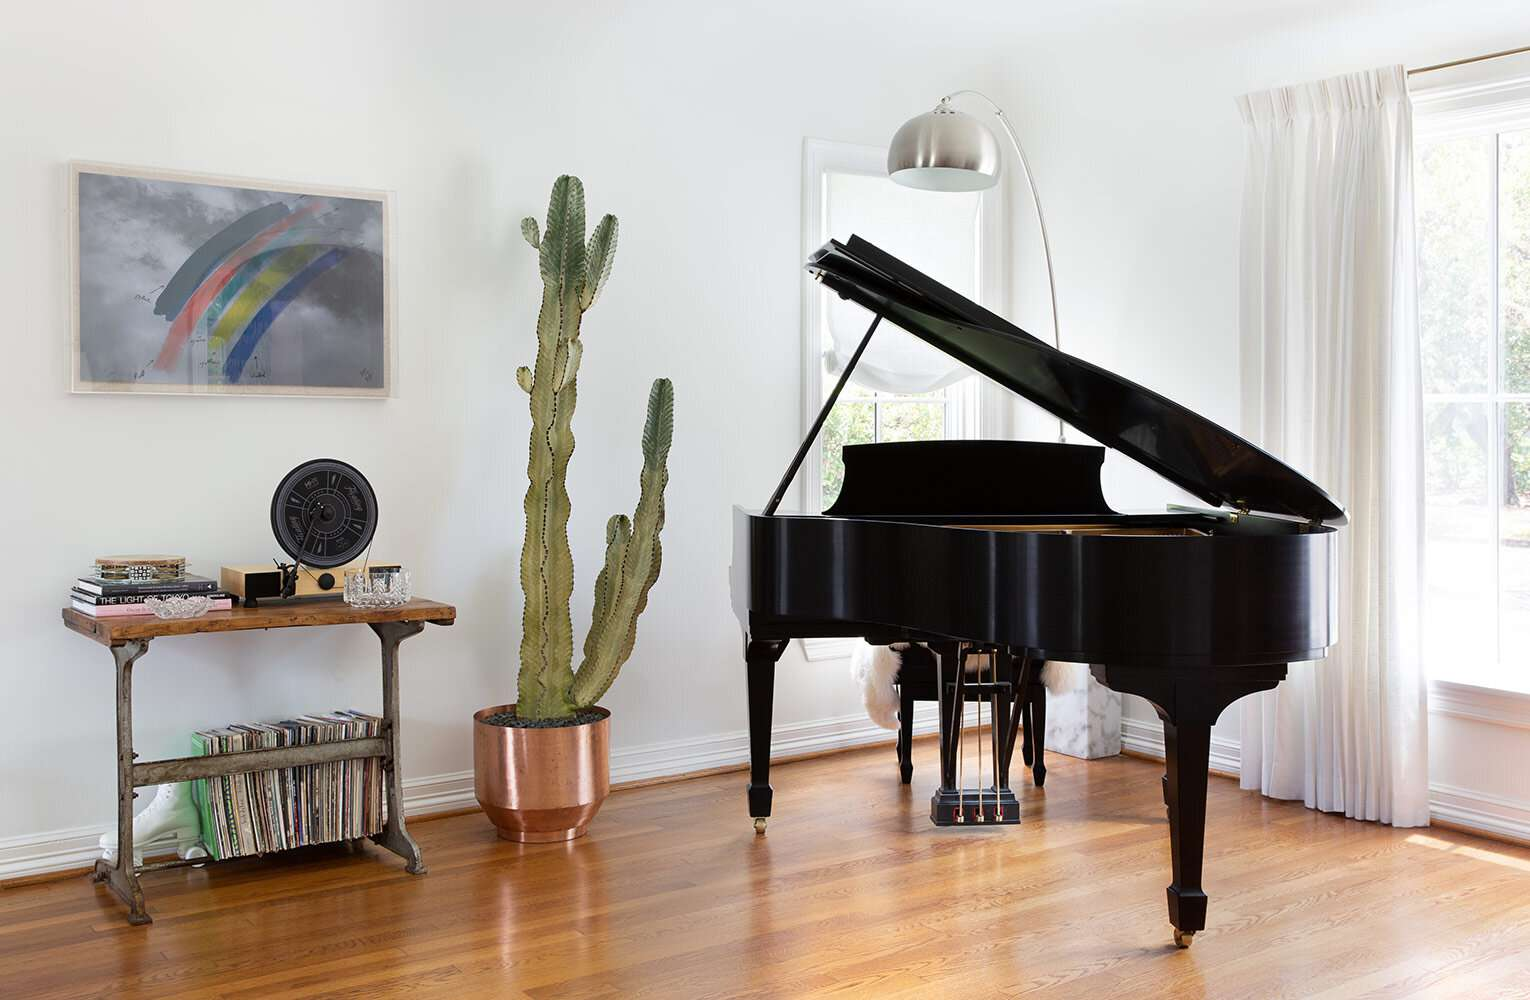 A living room decorated with sparse decor, including a piano and several metal pieces